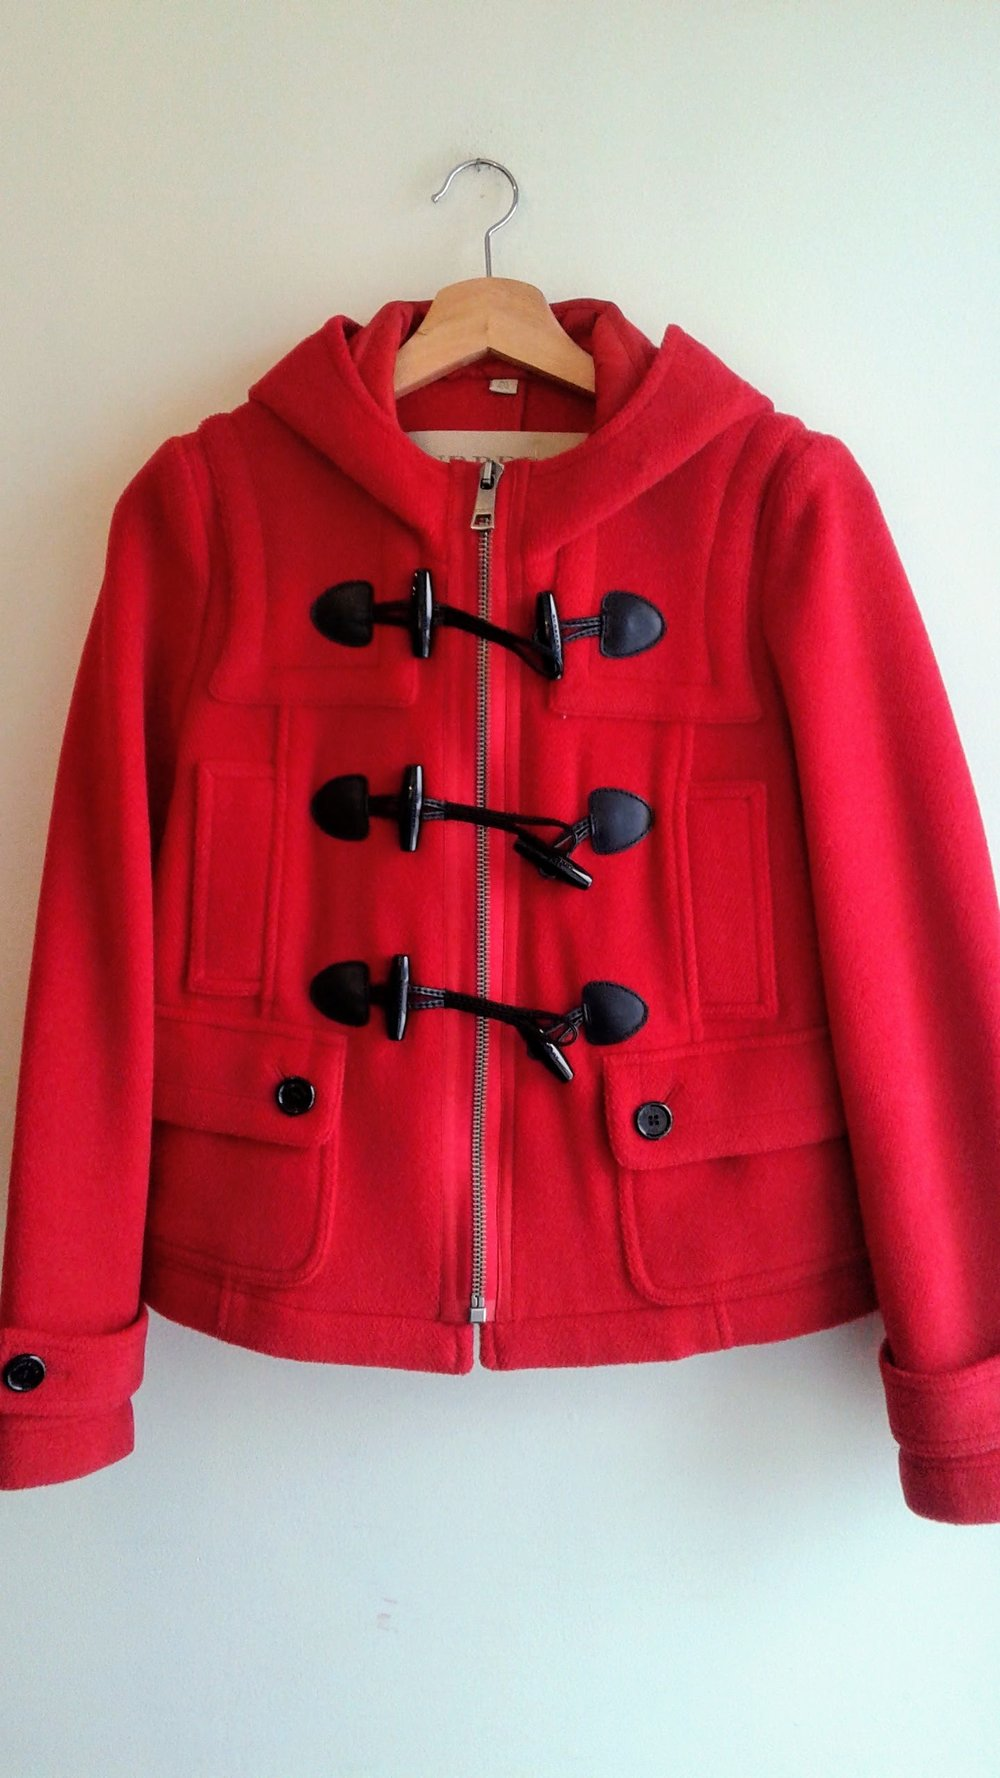 Burberry jacket; Size 4, $125